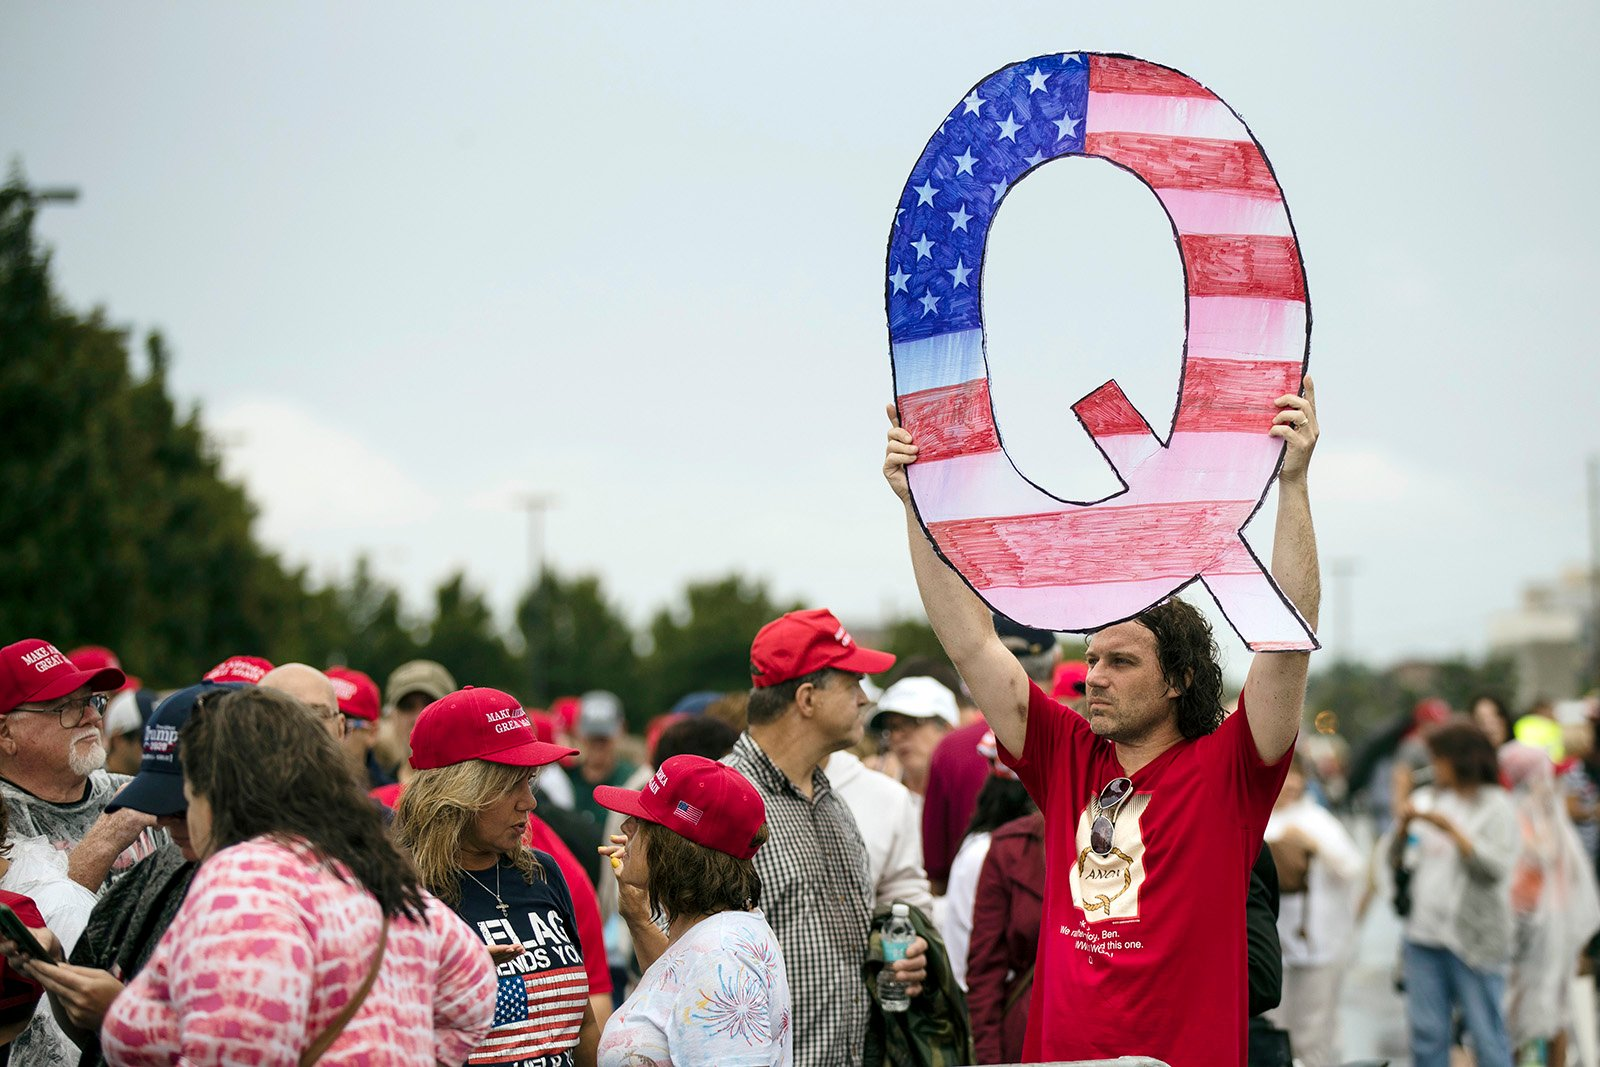 In this Aug. 2, 2018, file photo, David Reinert holds a Q sign while waiting in line with others to enter a campaign rally with President Donald Trump in Wilkes-Barre, Pennsylvania. The far-right QAnon conspiracy theory forged in a dark corner of the internet has come into the mainstream political arena. (AP Photo/Matt Rourke)